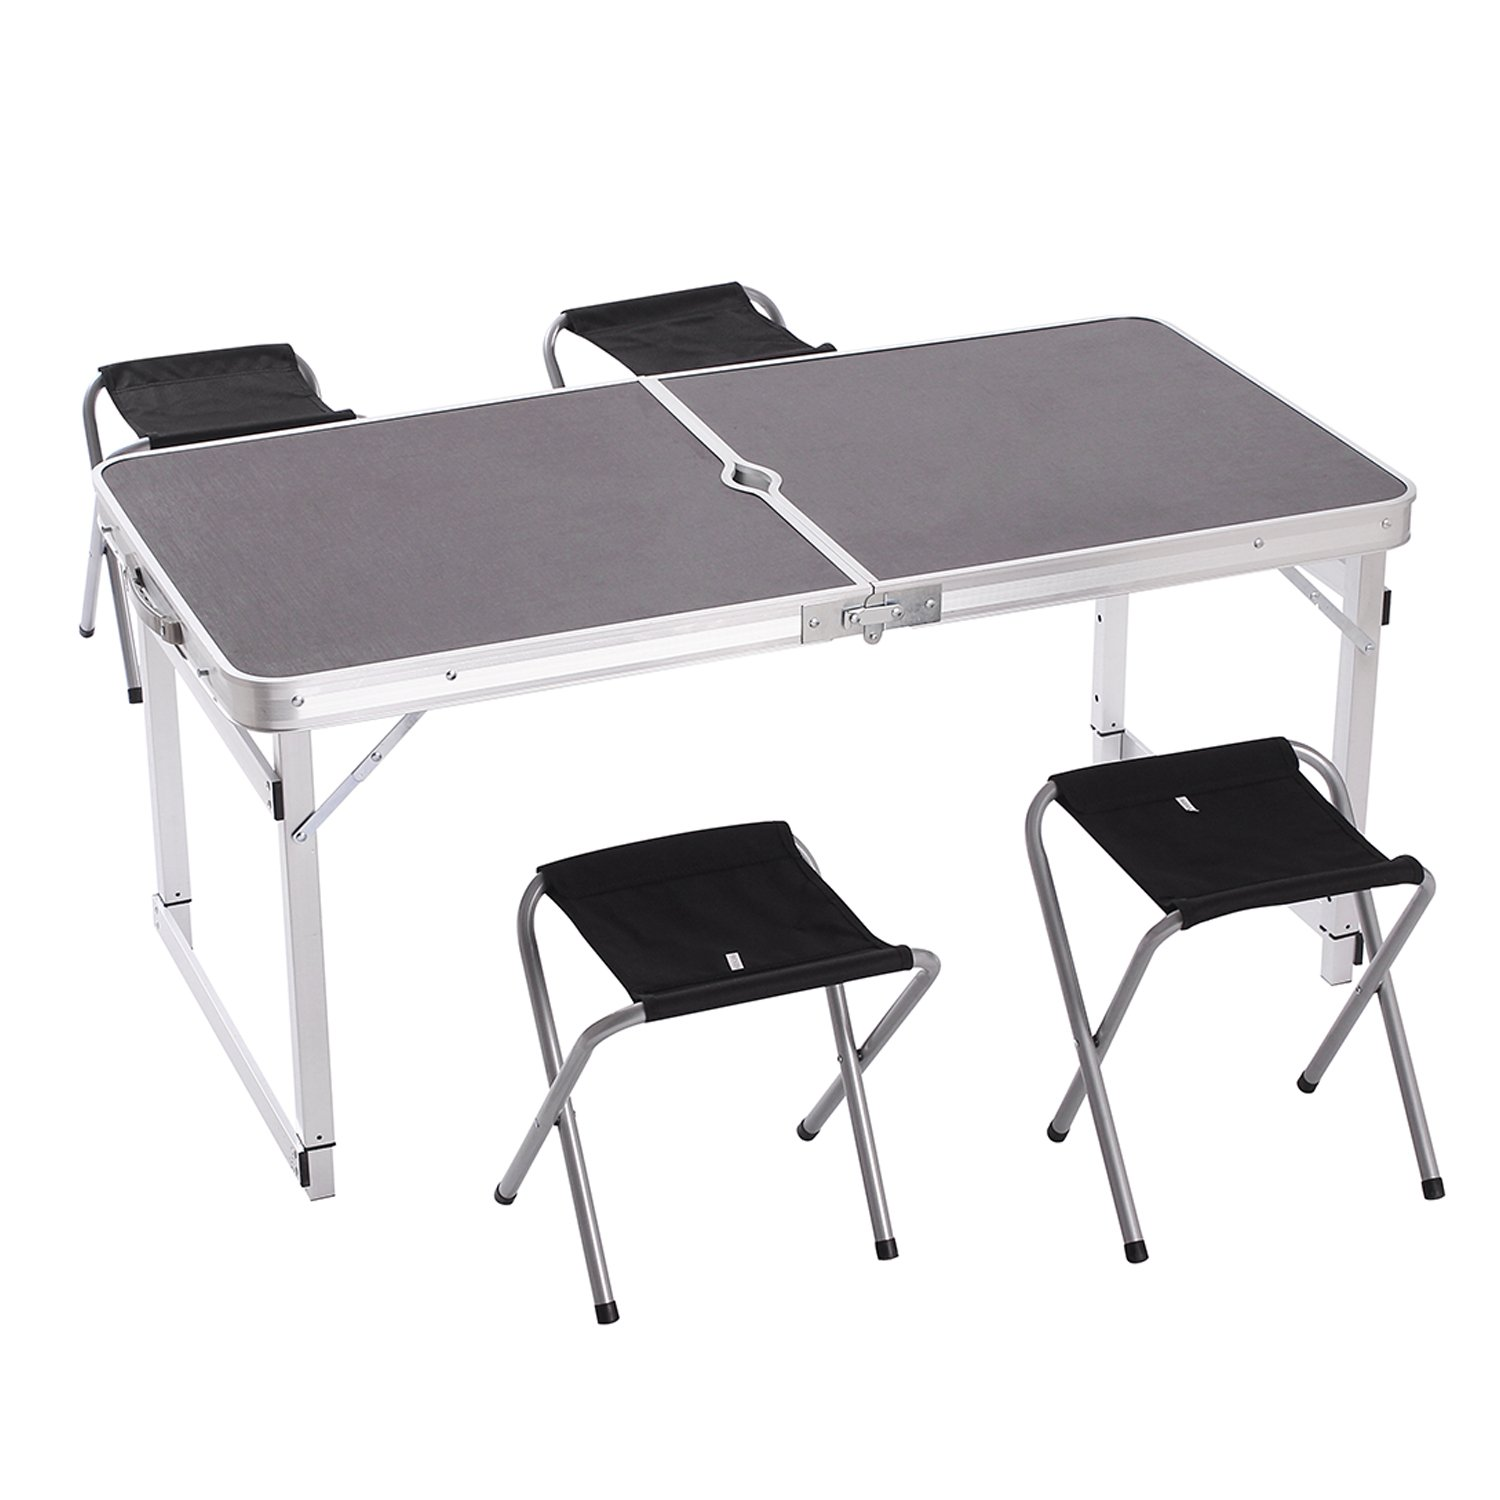 Portable Folding Table w 4 Folding Chairs for Indoor Outdoor